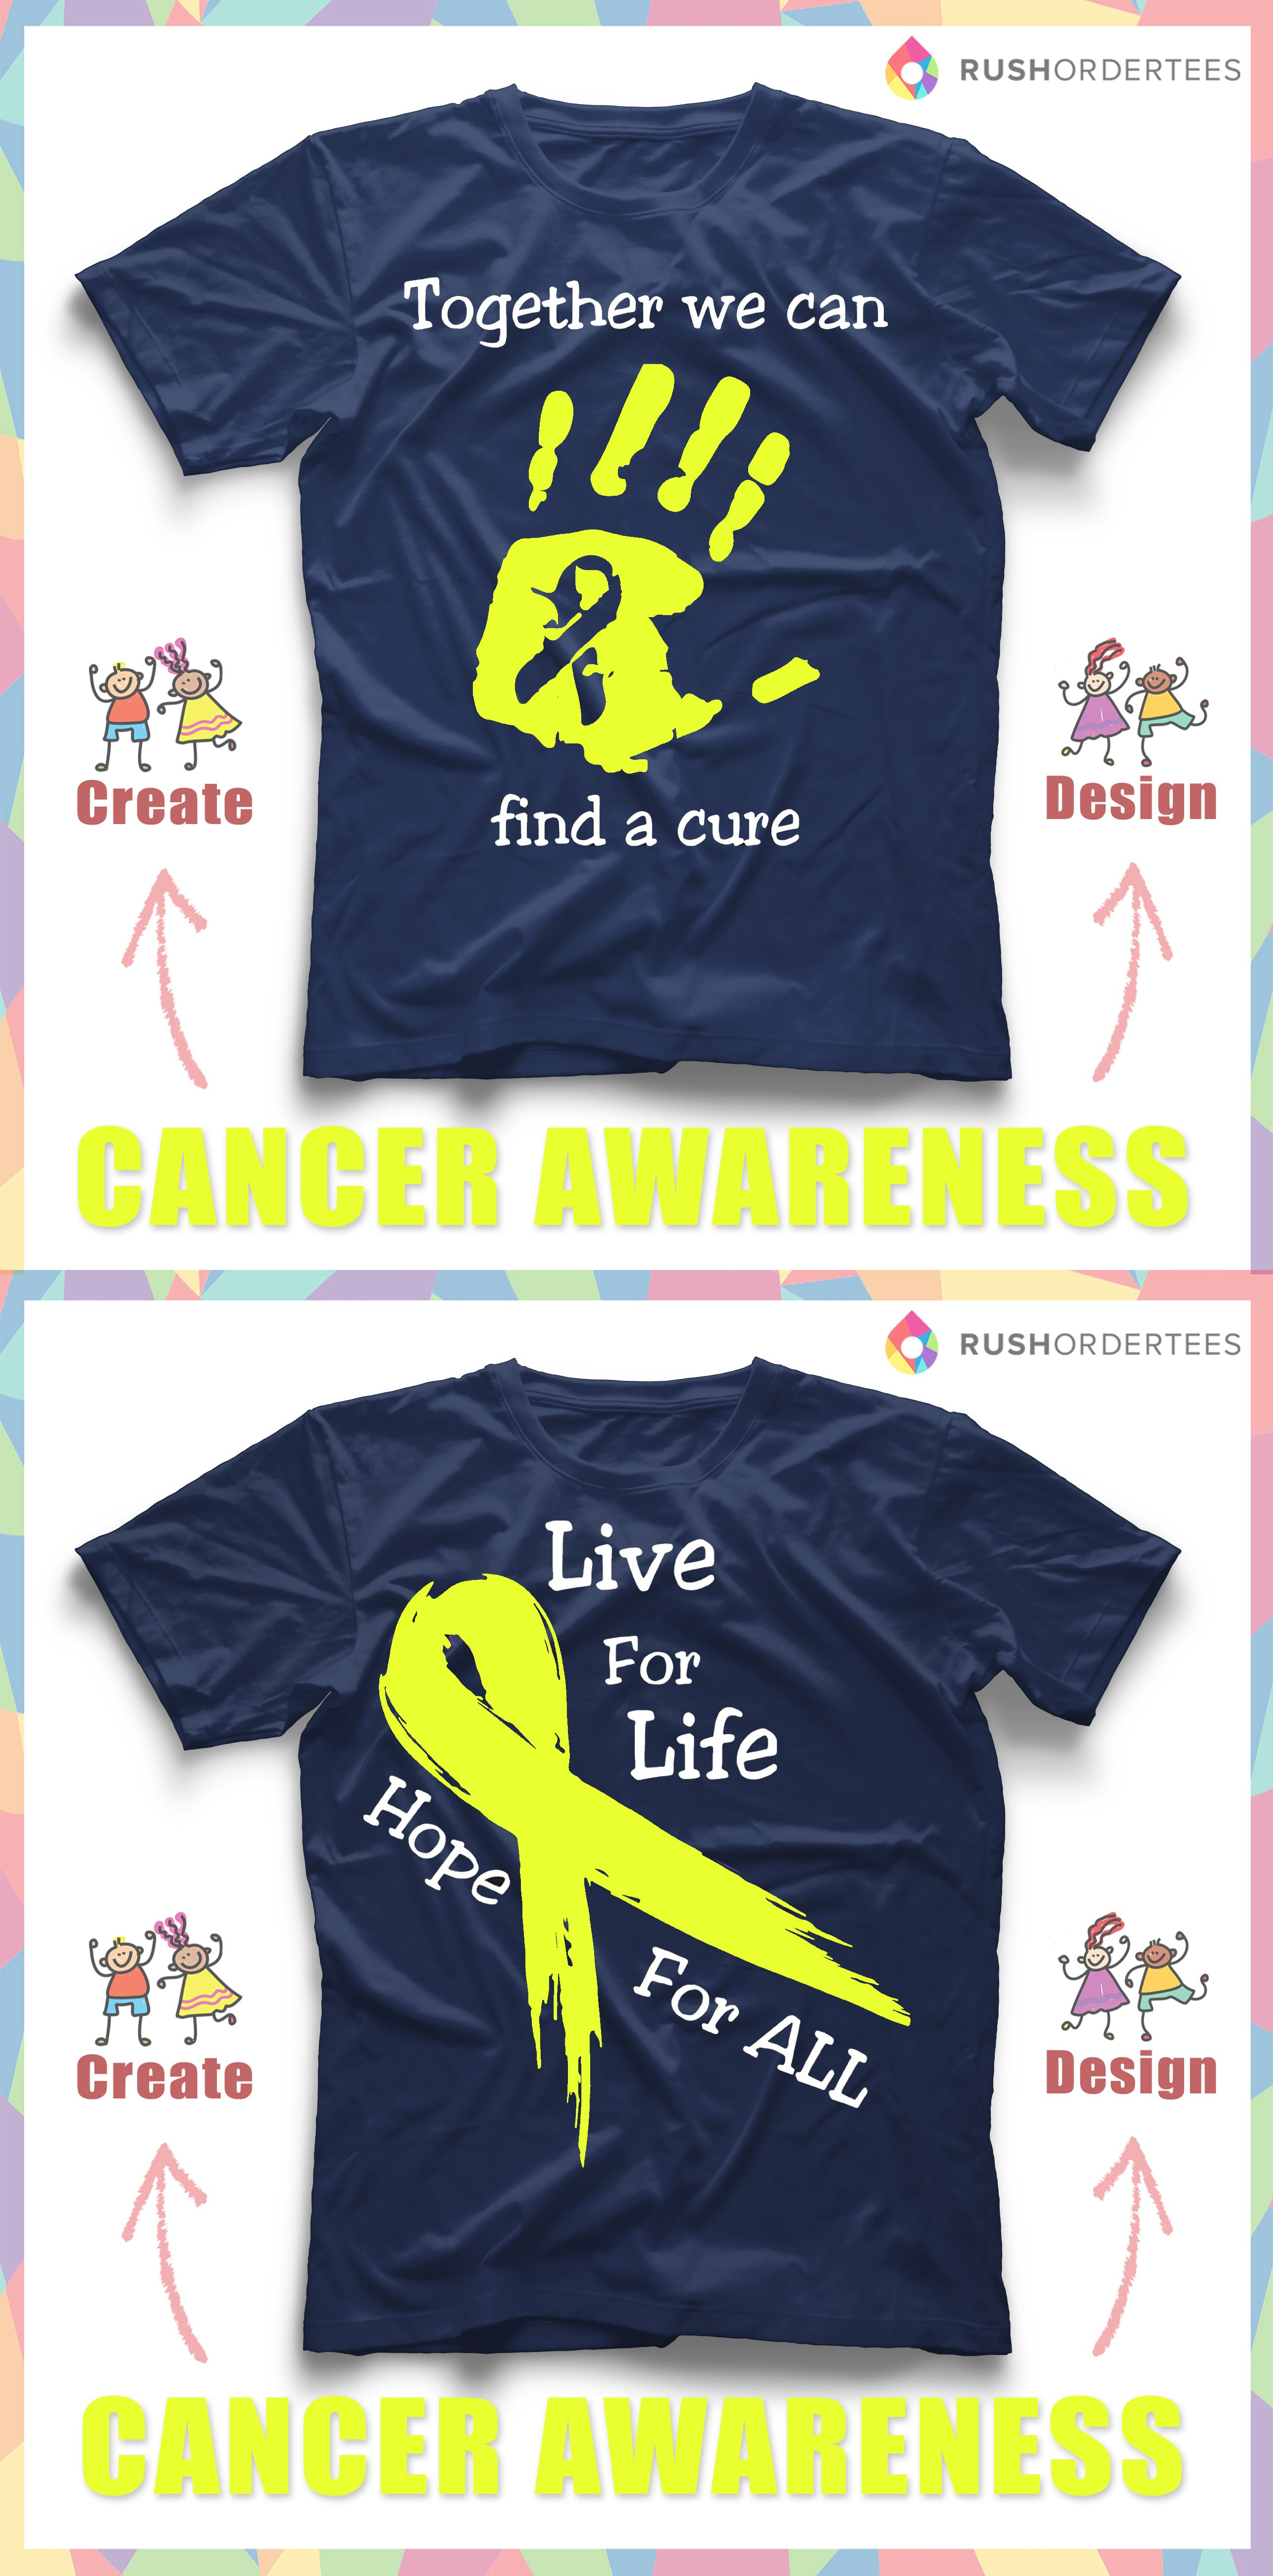 1c942f77f Create custom cancer awareness t-shirts for your next event!  www.rushordertees.com #cancerawareness